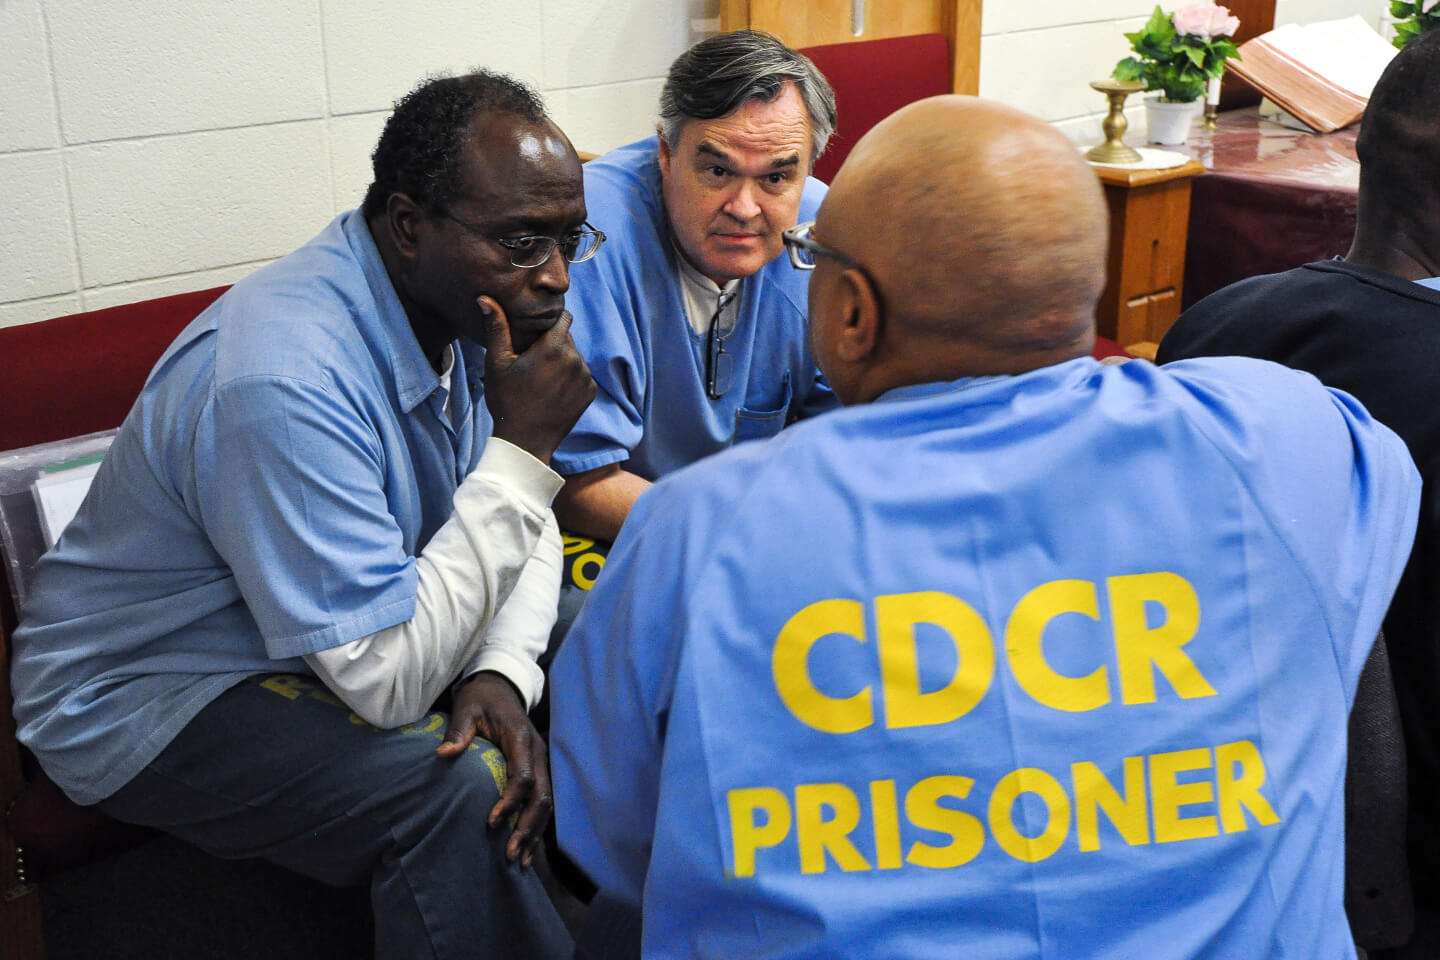 San Quentin inmages confer